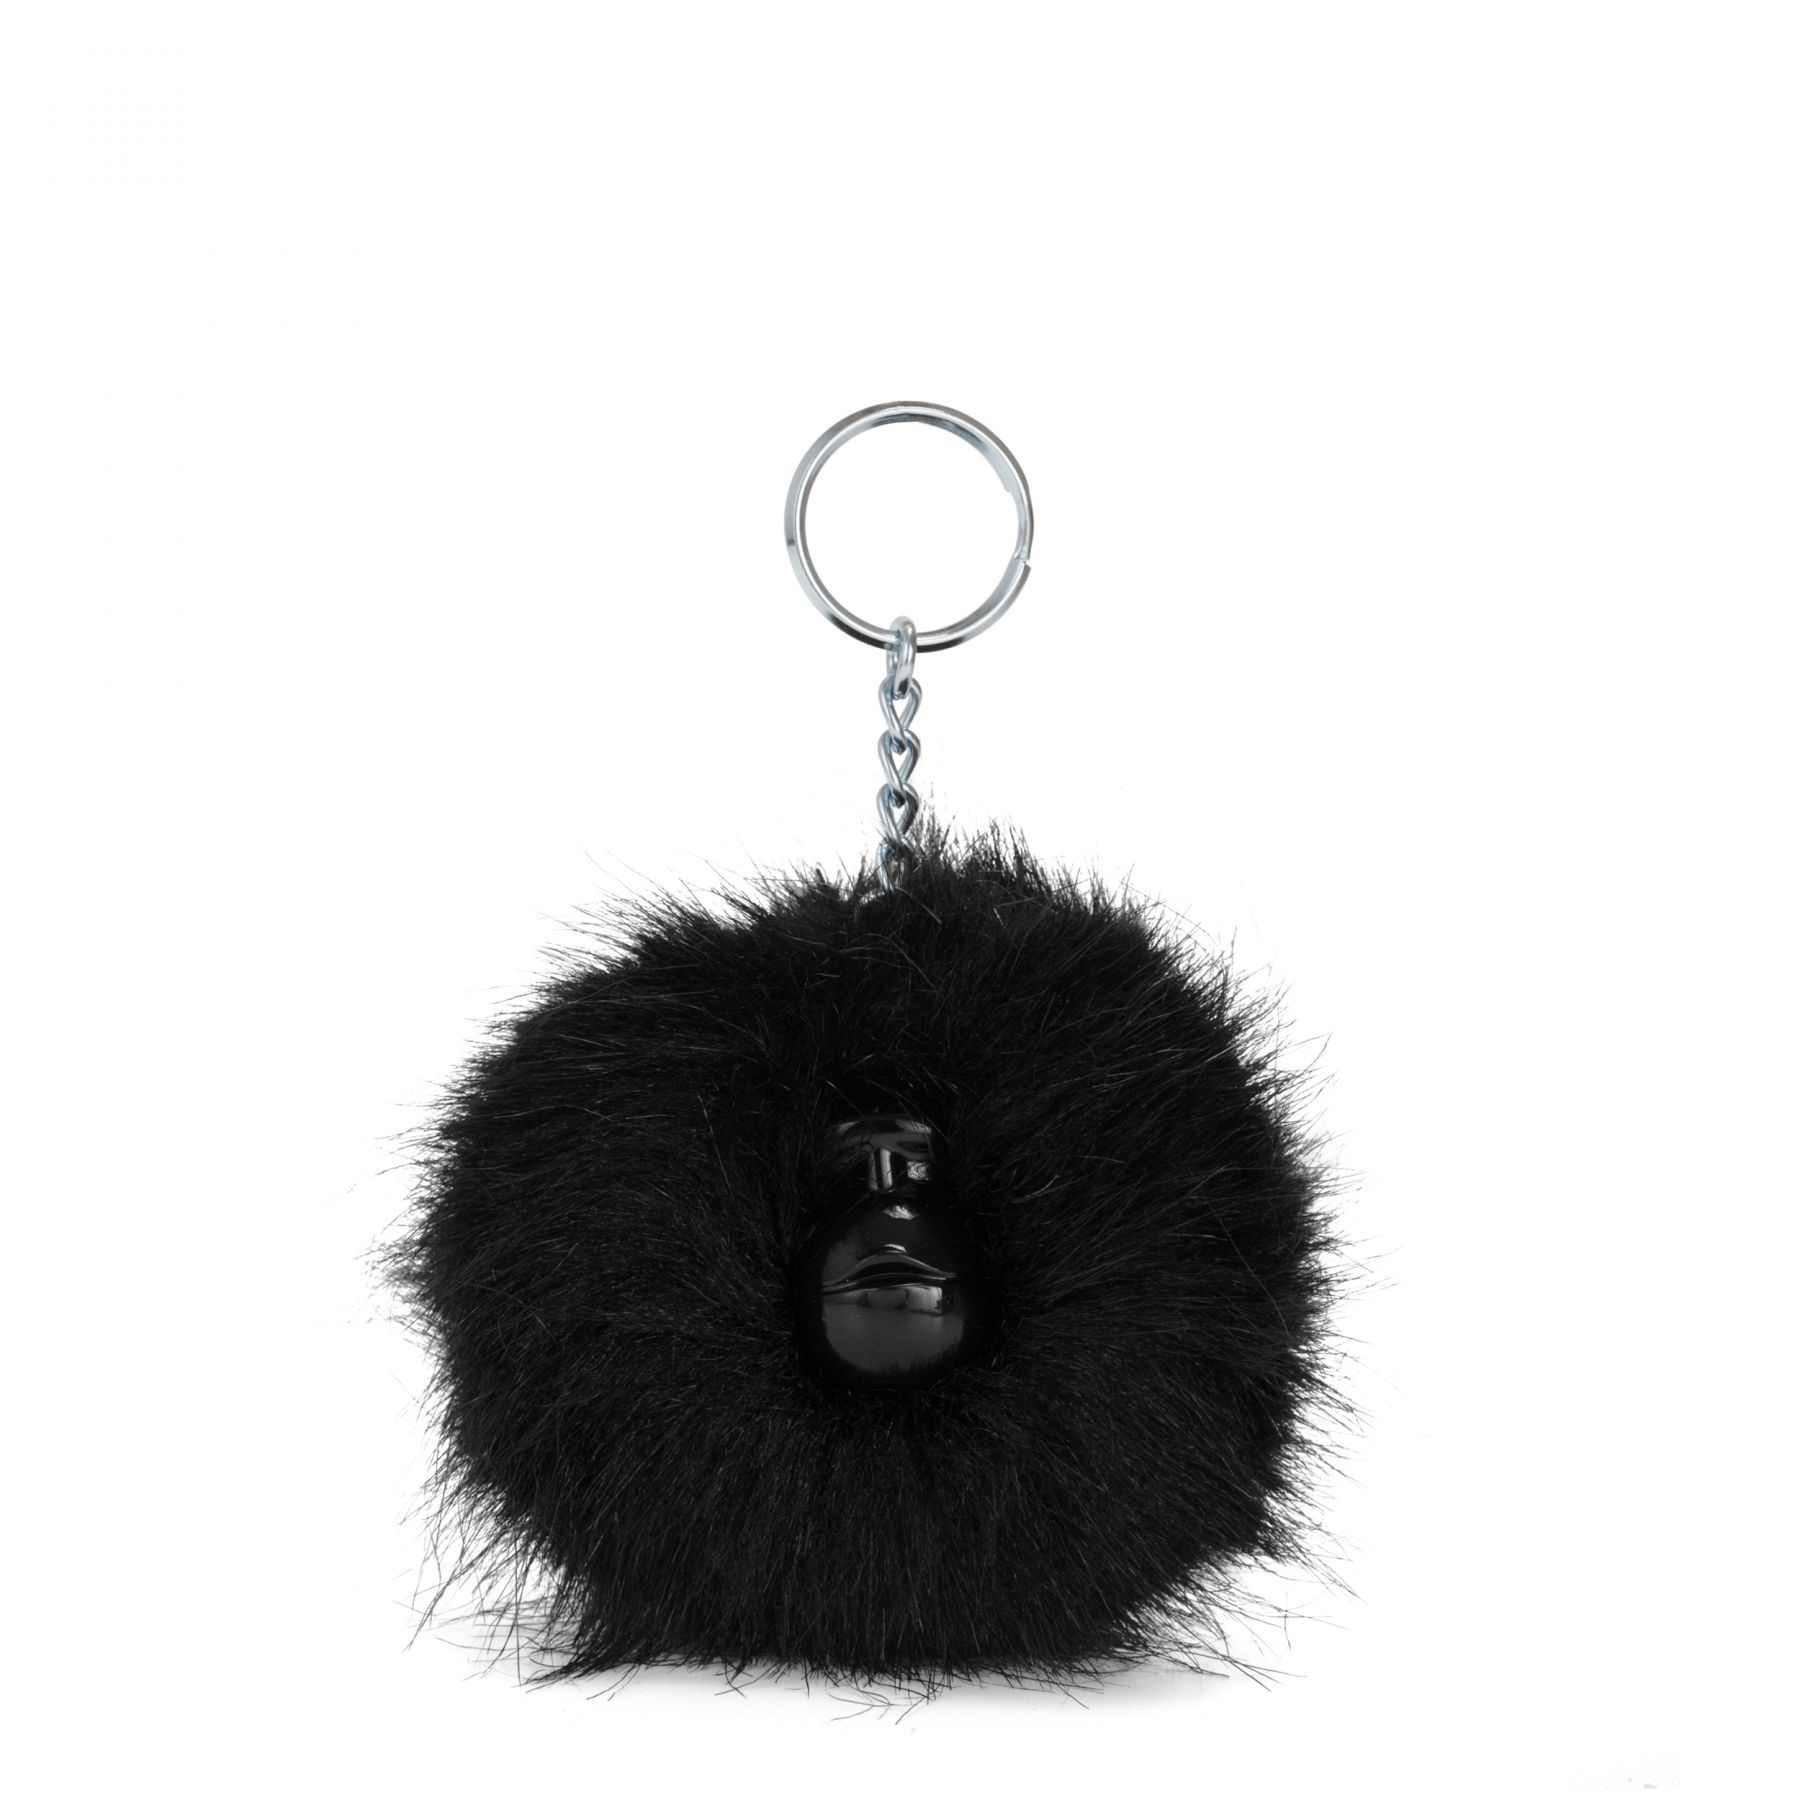 POMPOM MONKEY Latest Accessories by Kipling - Front view